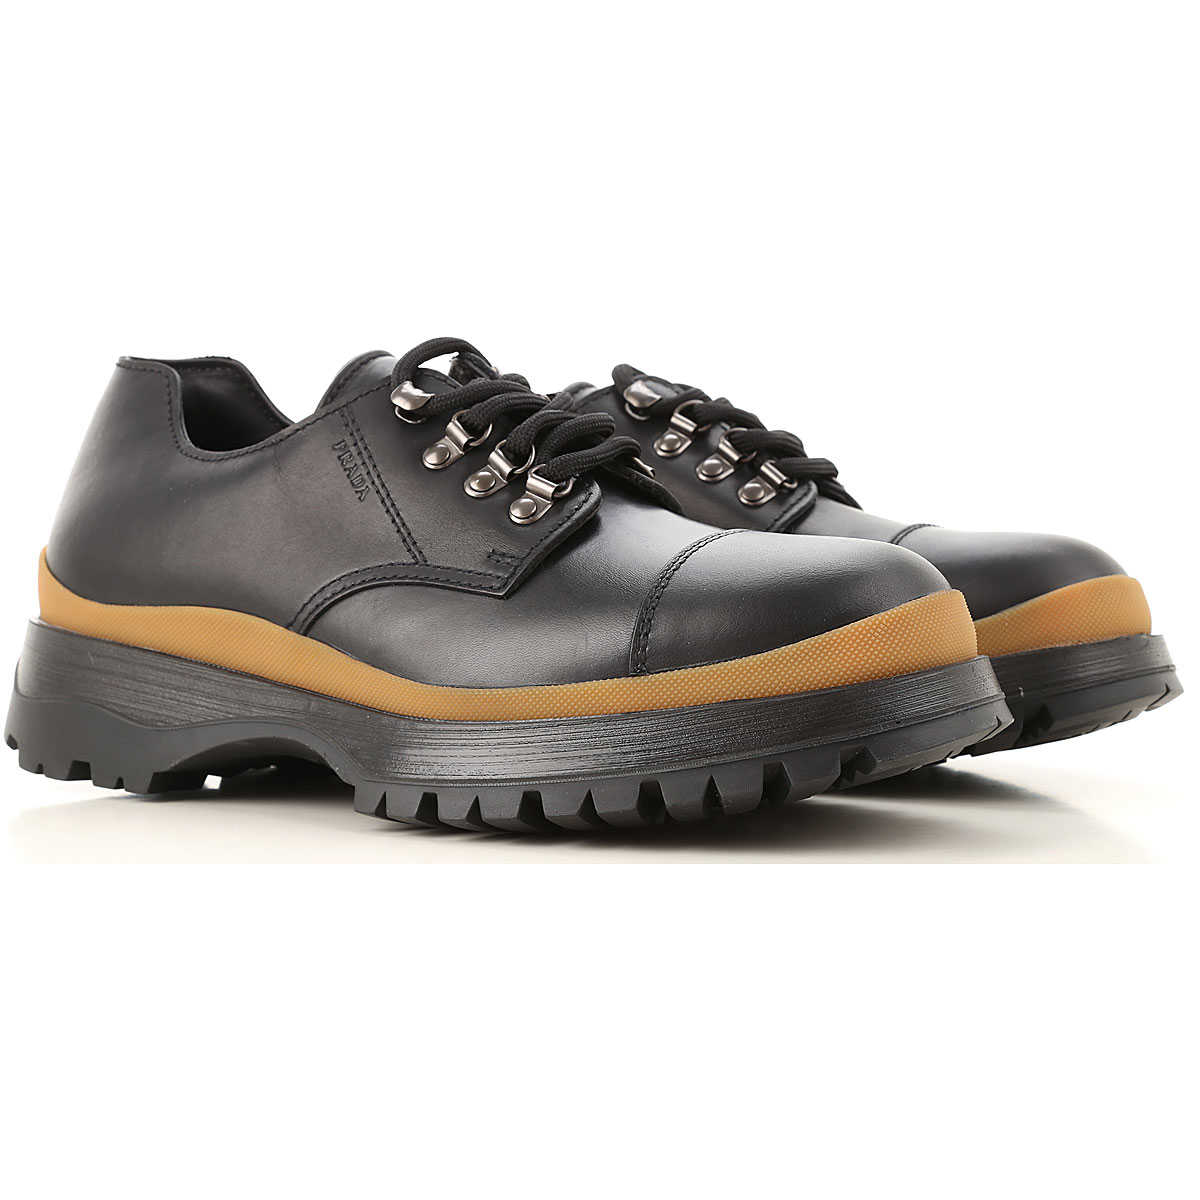 Prada Lace Up Shoes for Men Oxfords Derbies and Brogues On Sale USA - GOOFASH